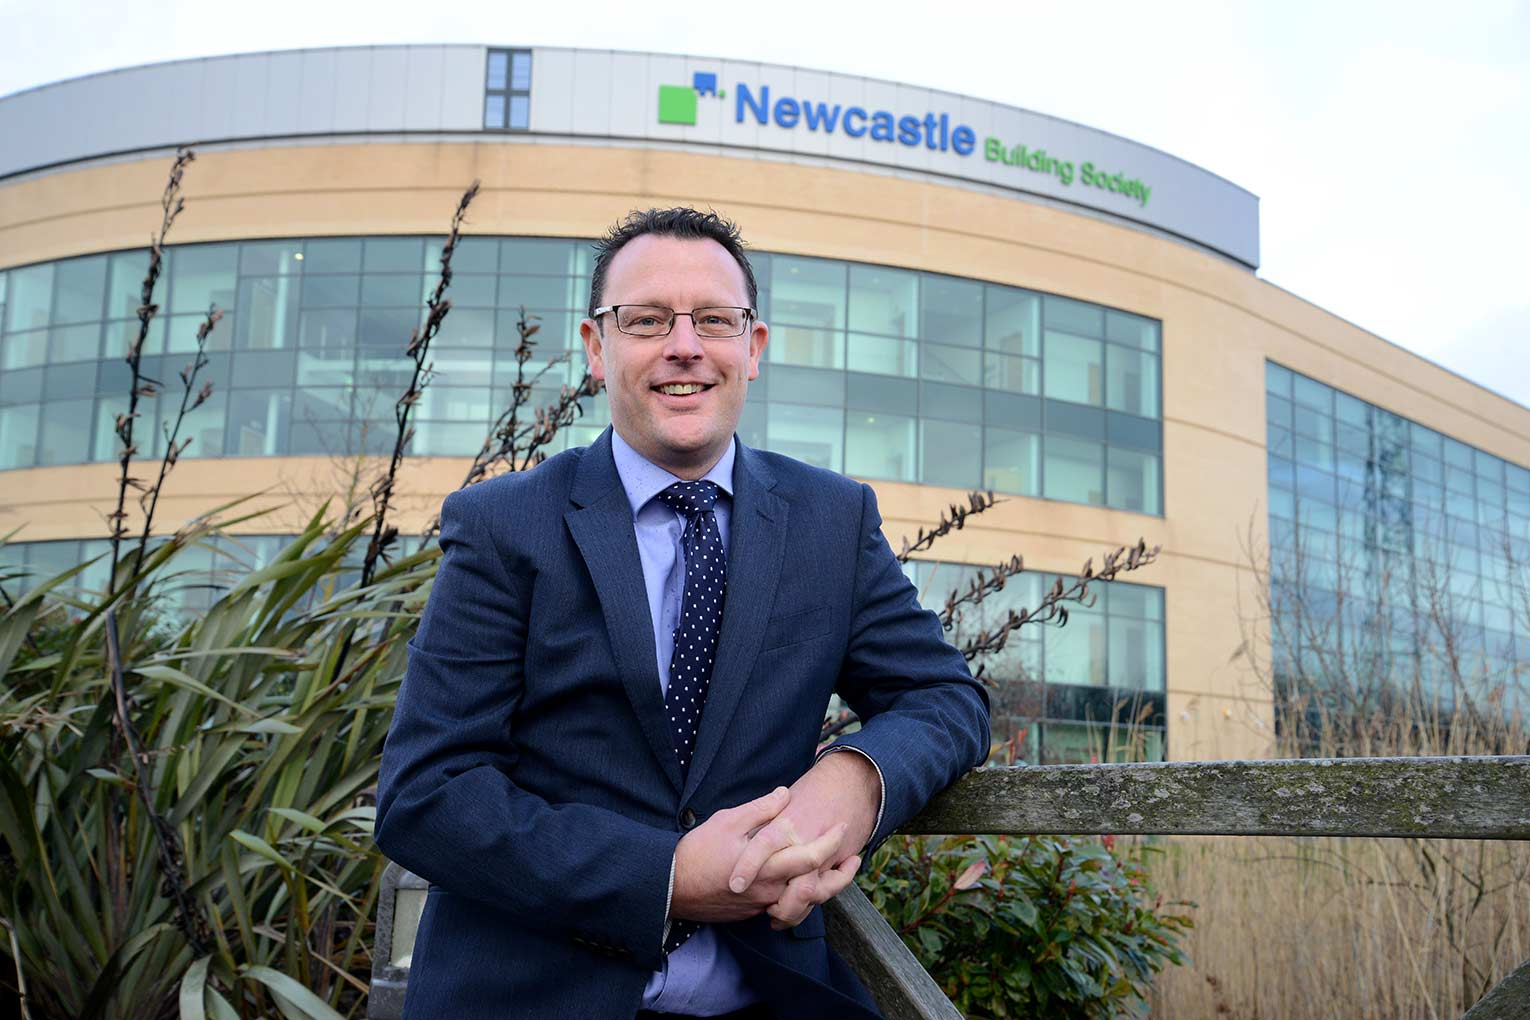 The Newcastle appoints customer director